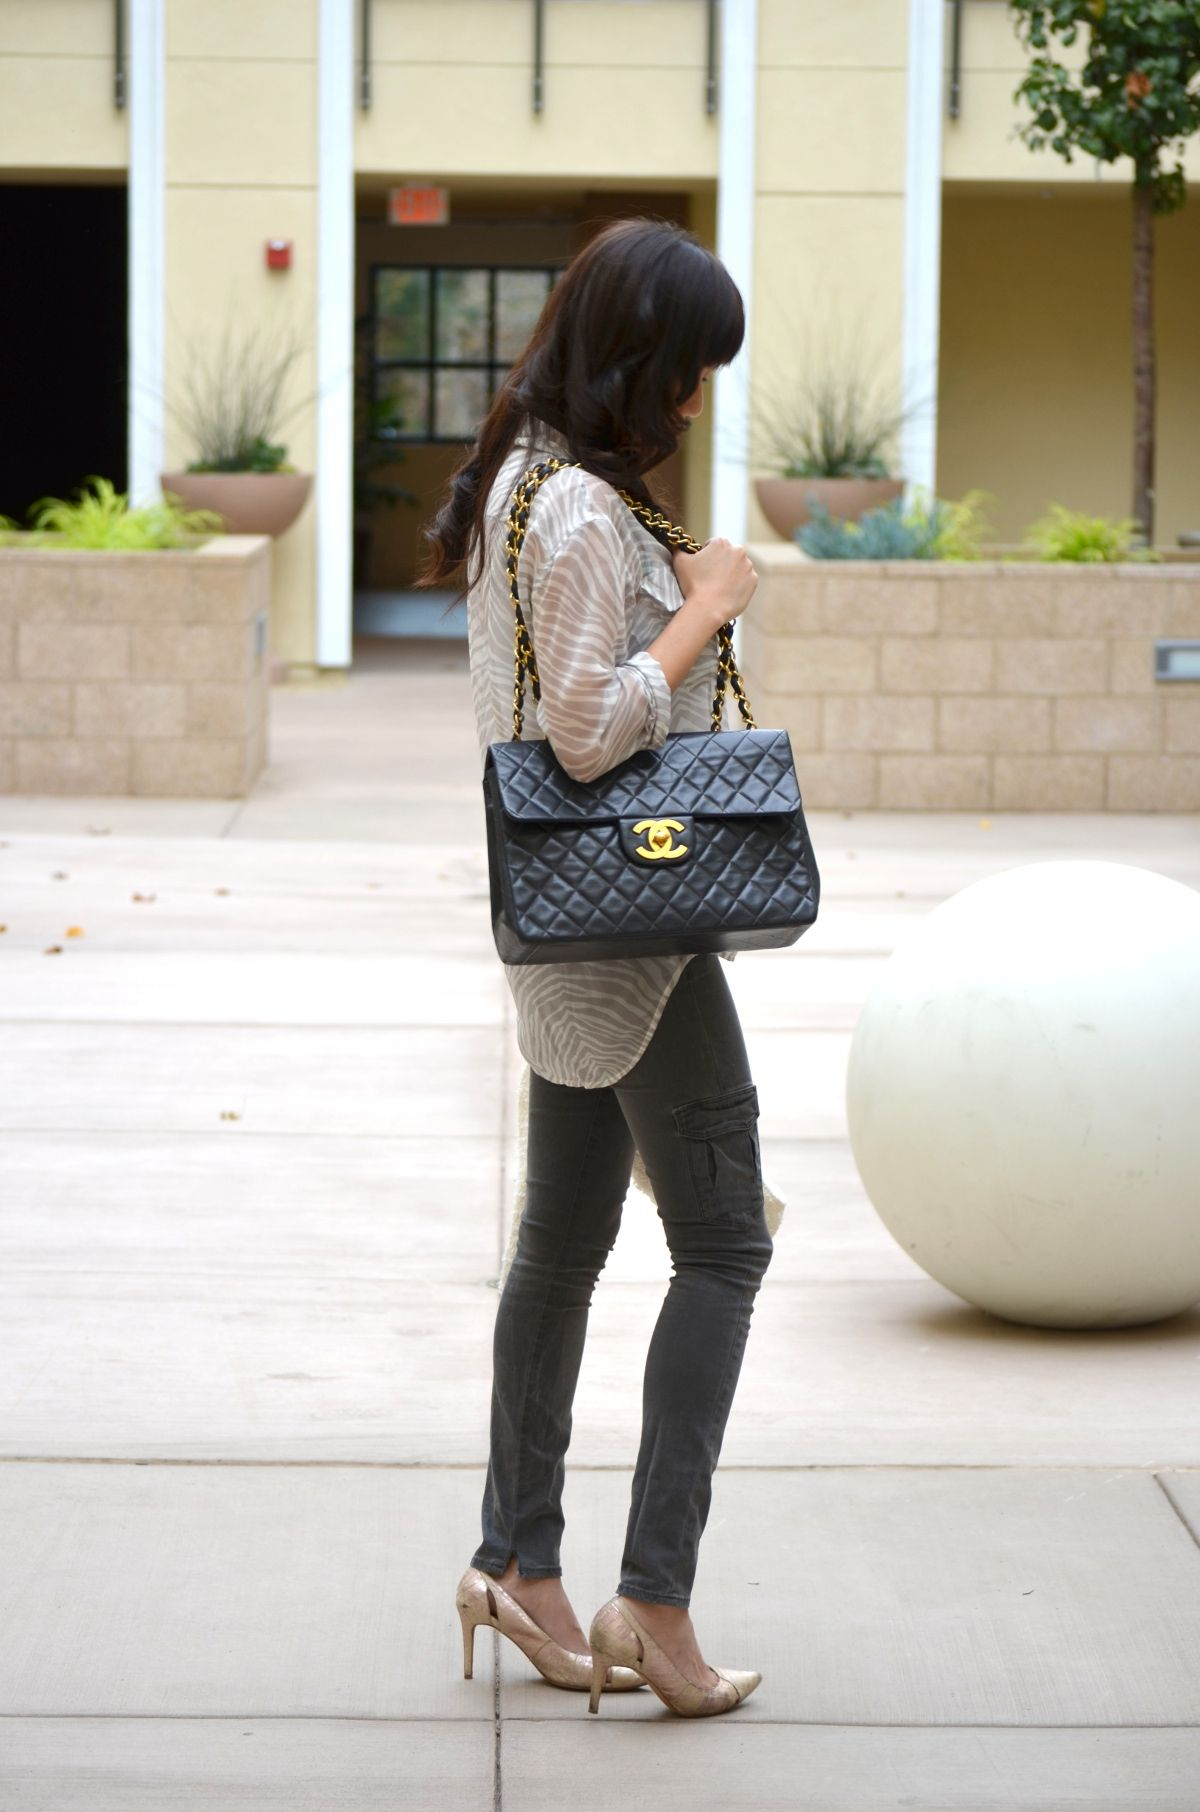 4964a5c19fcd A review of the Jumbo XL Chanel bag in black lambskin with gold hardware.